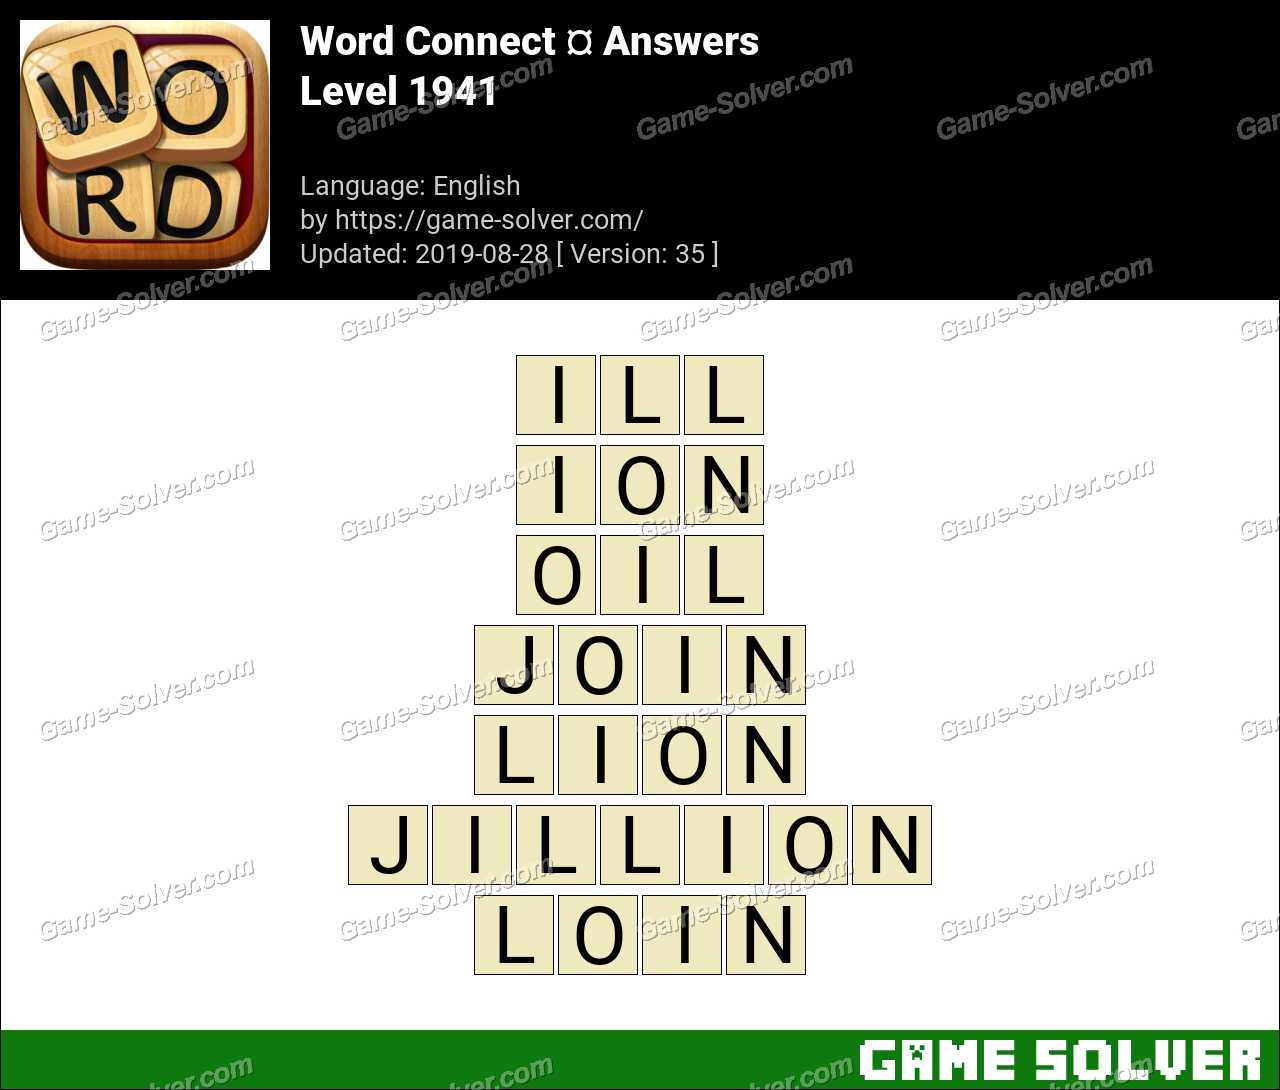 Word Connect Level 1941 Answers